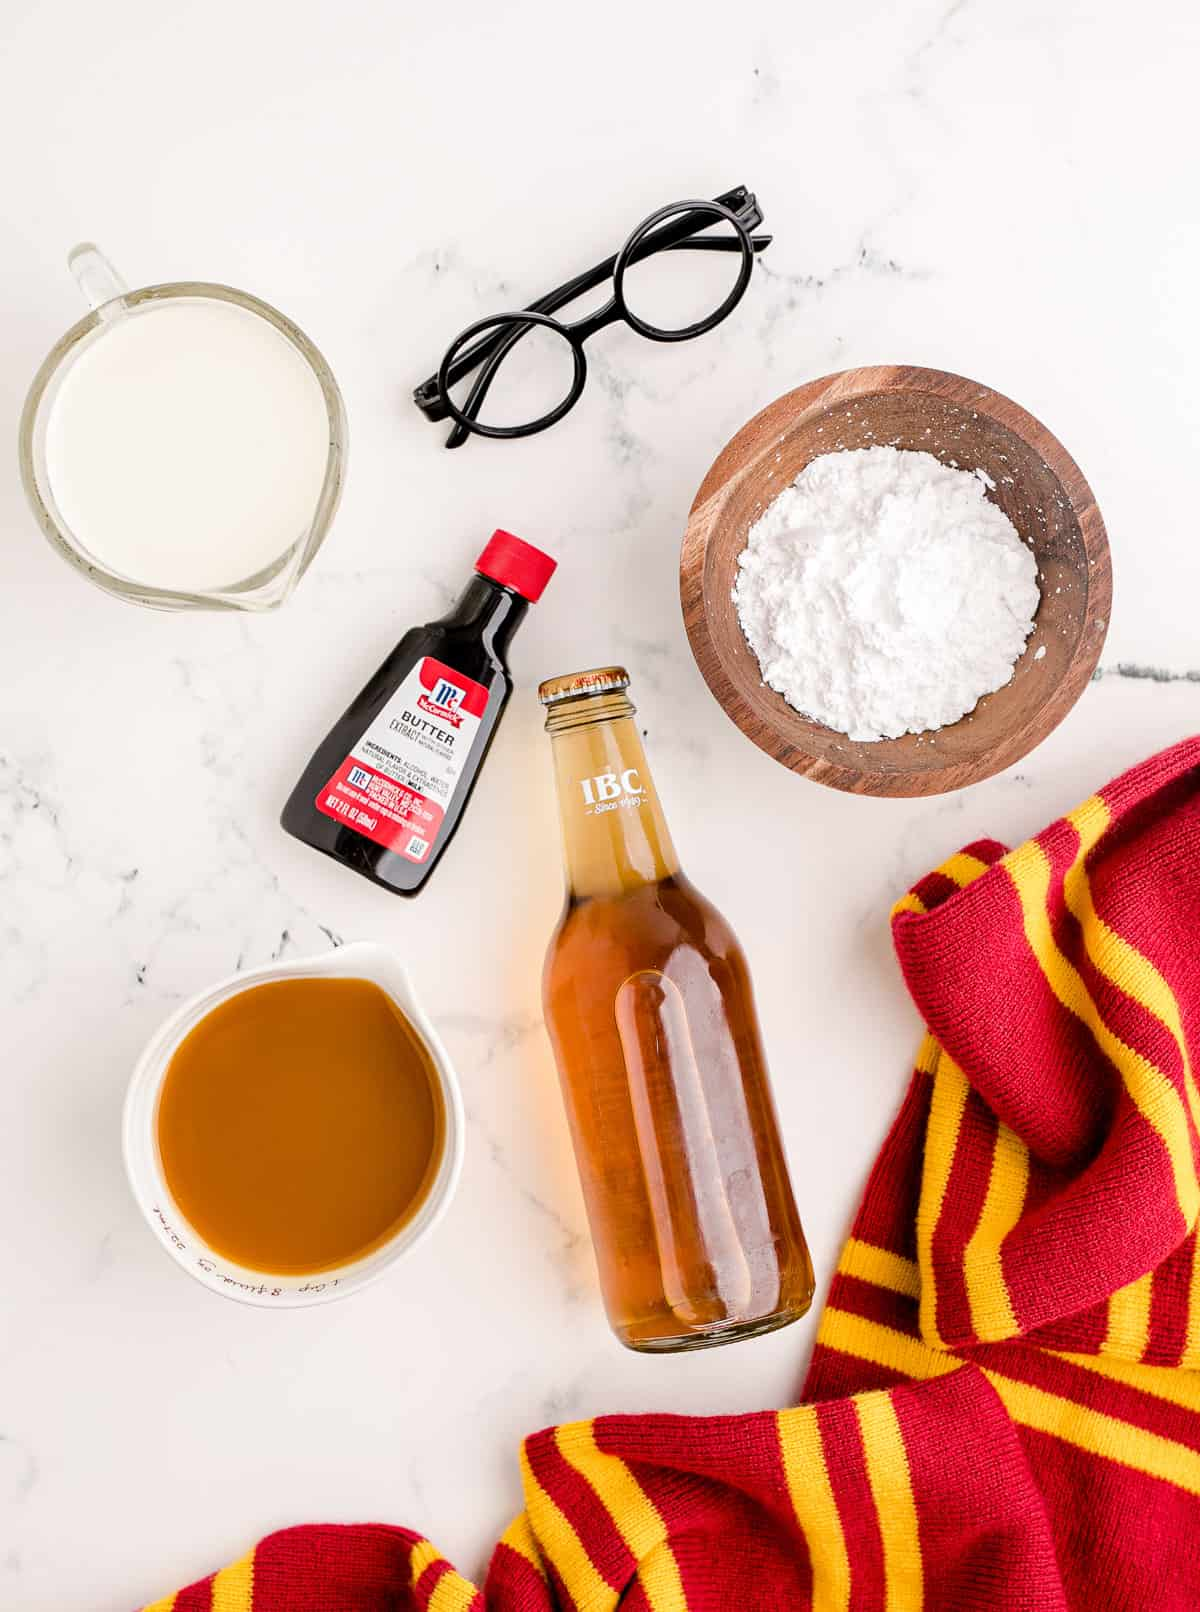 Ingredients for making homemade butterbeer.